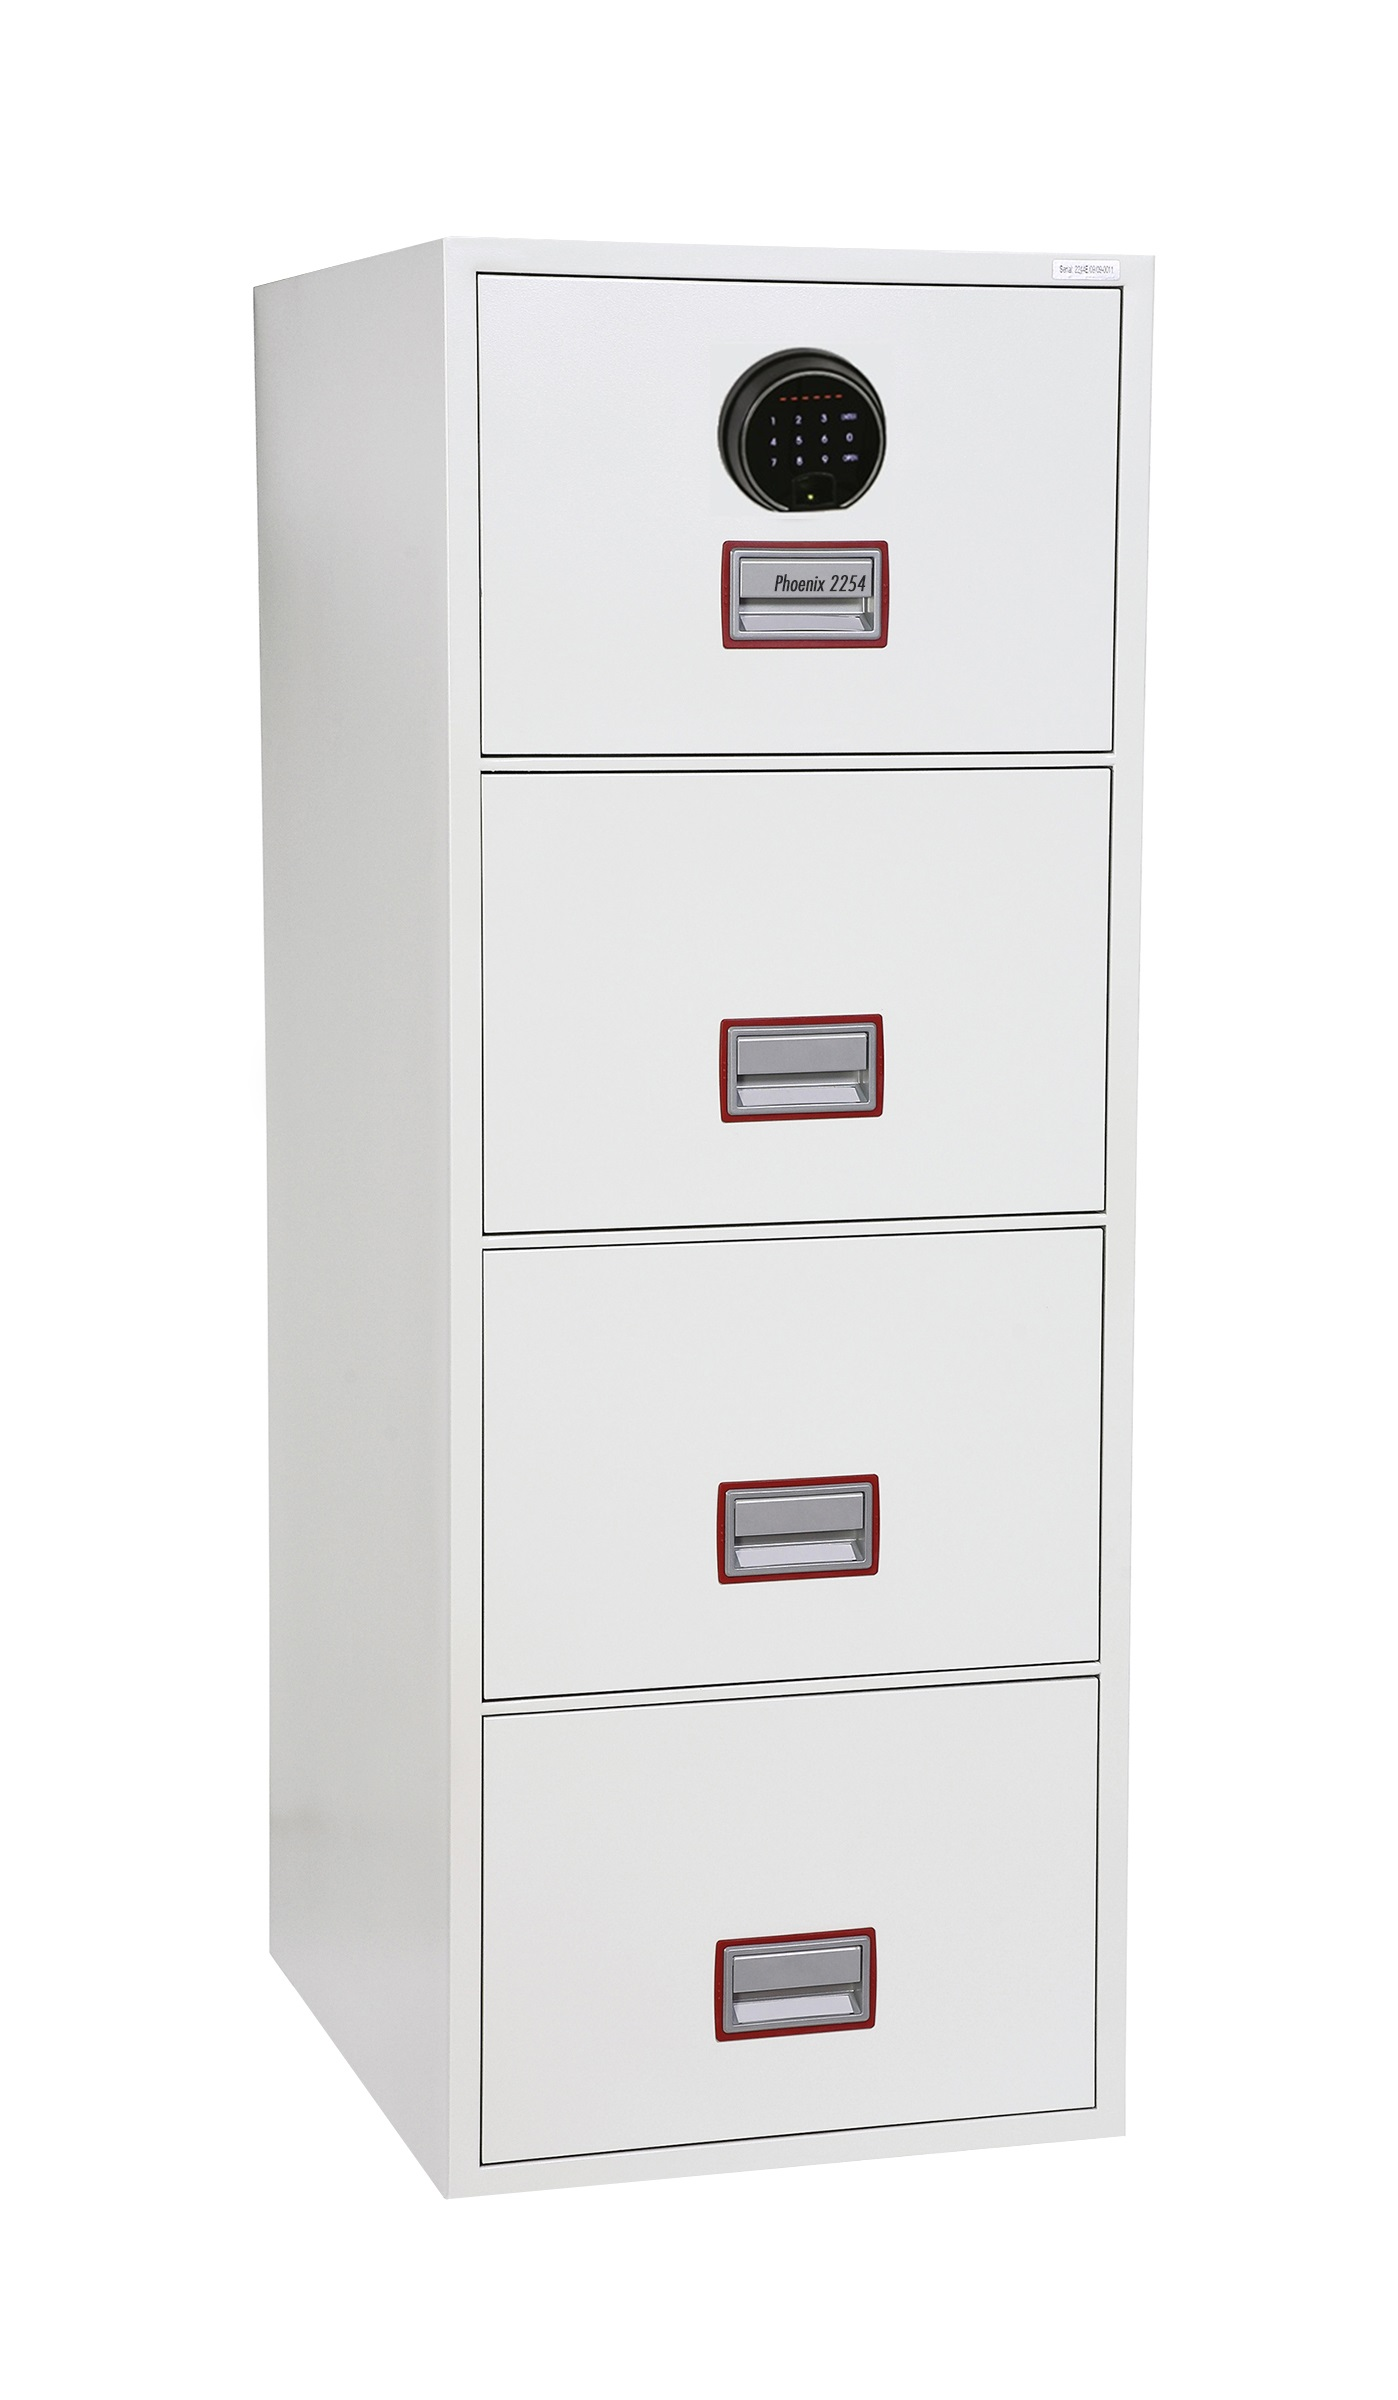 Categories : Fire Proof Filling Cabinets, Fire Proof Safe/Cabinets